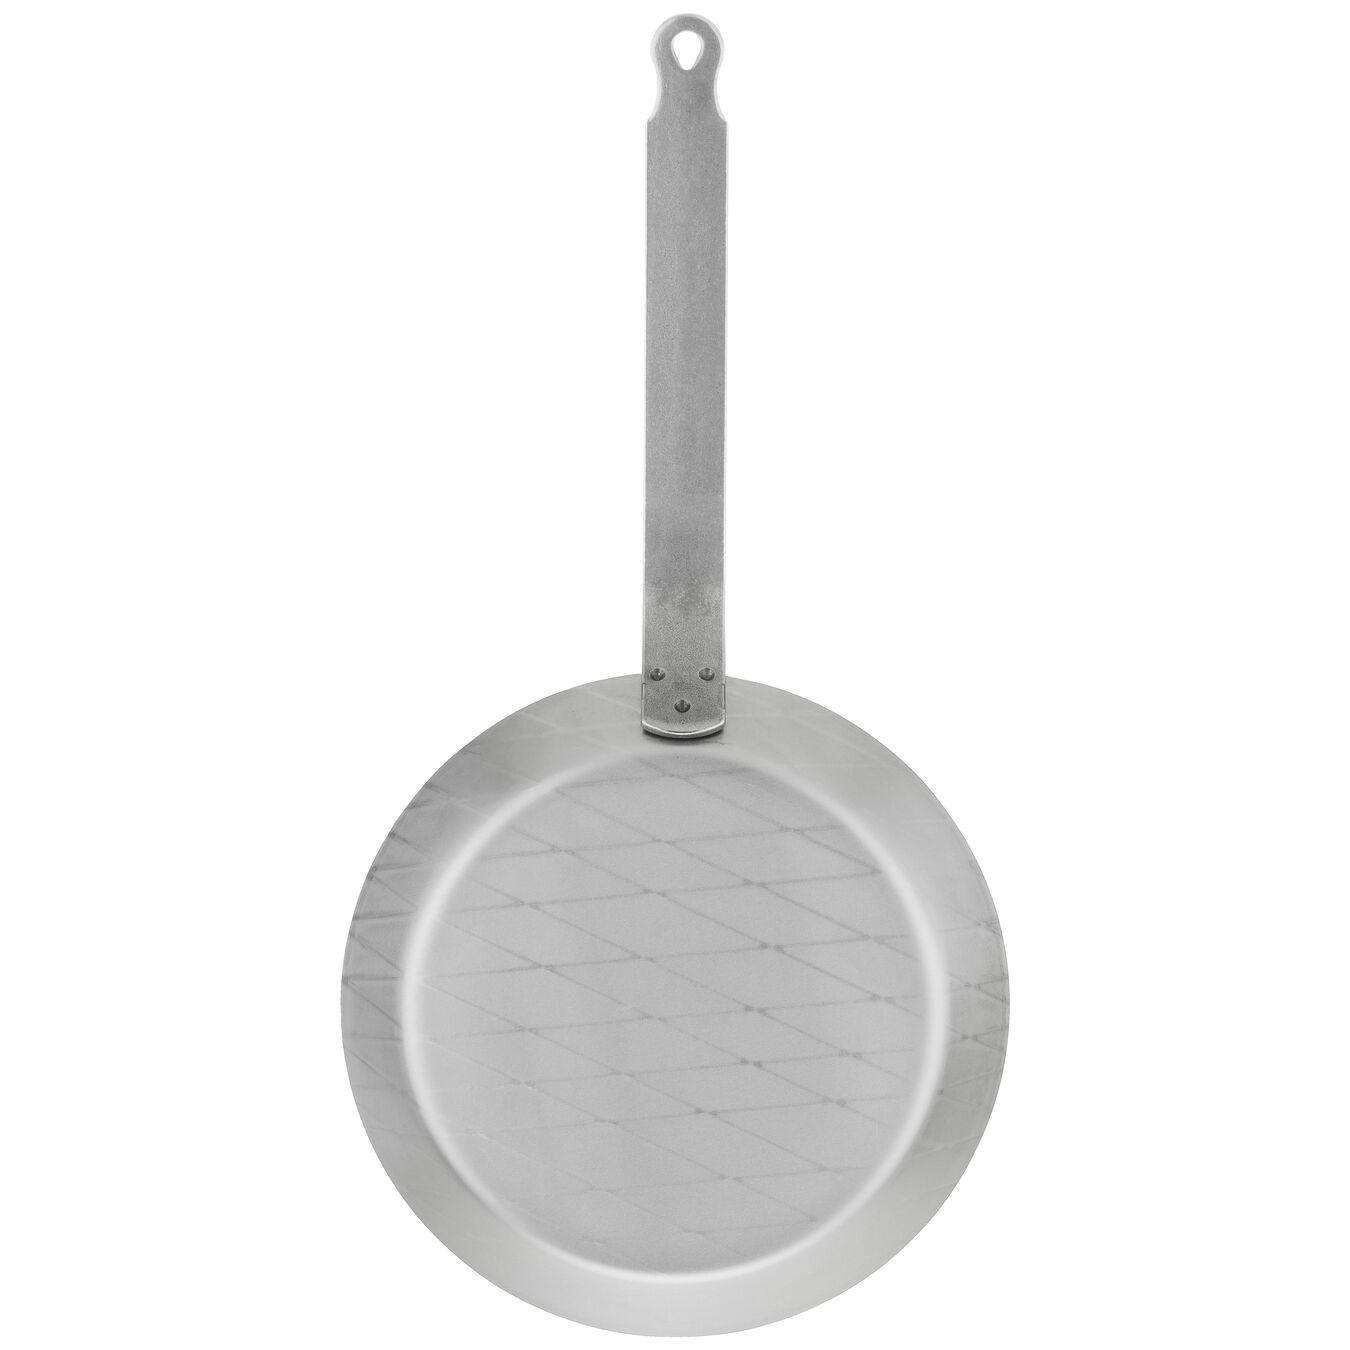 24 cm / 9.5 inch Carbon steel Frying pan,,large 4